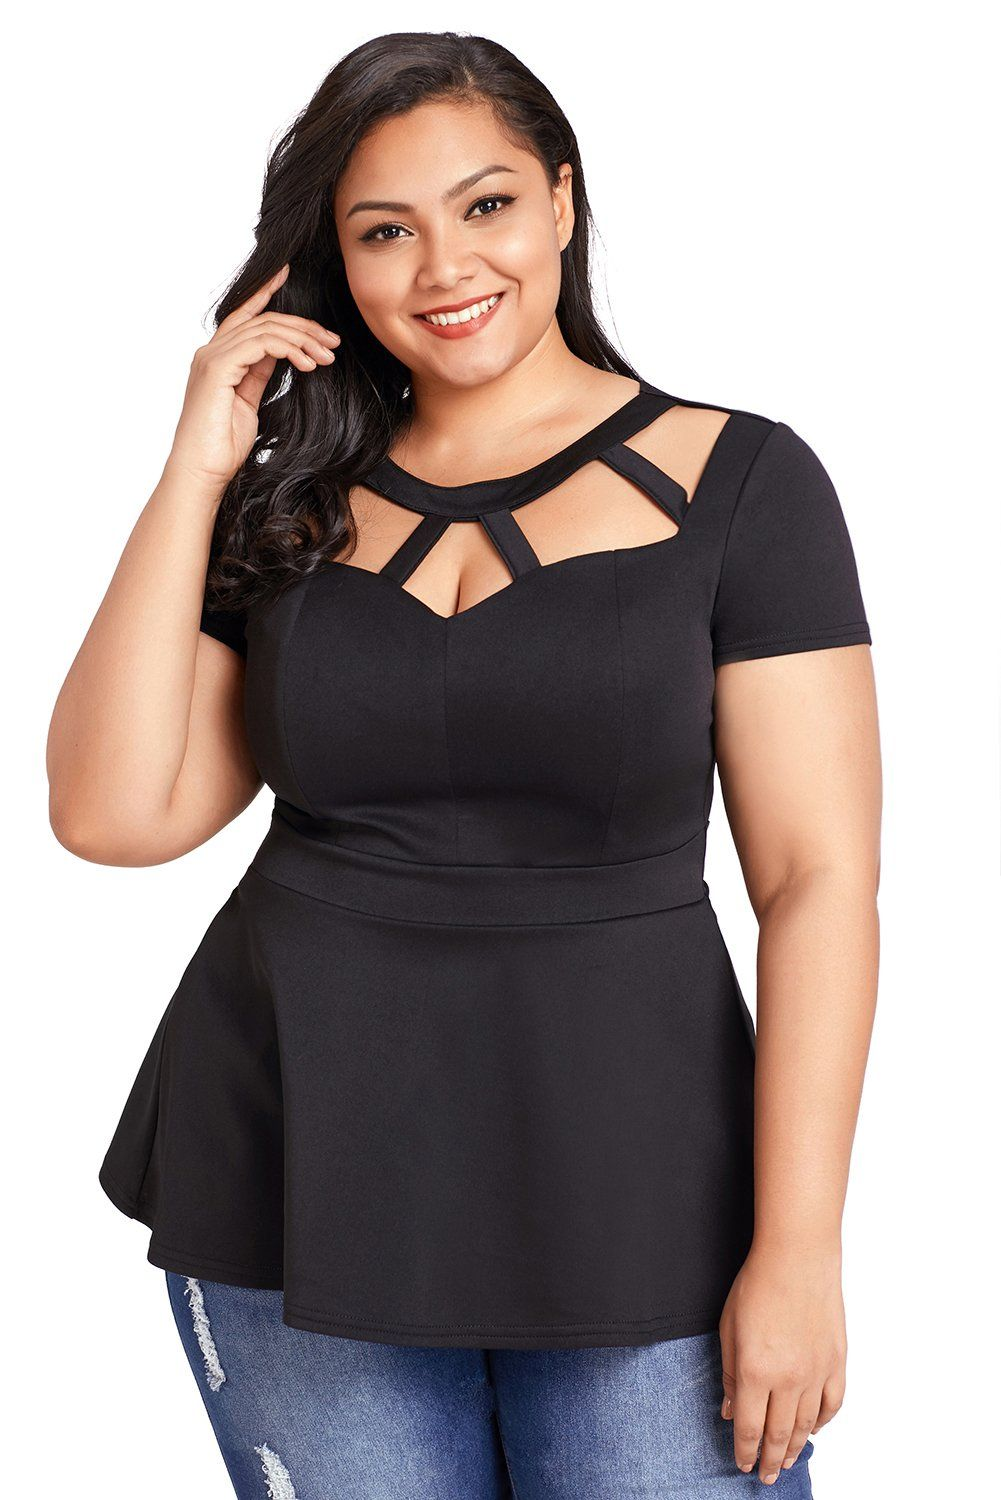 b3742fa0a38 Sexy Black Plus Size Caged Top